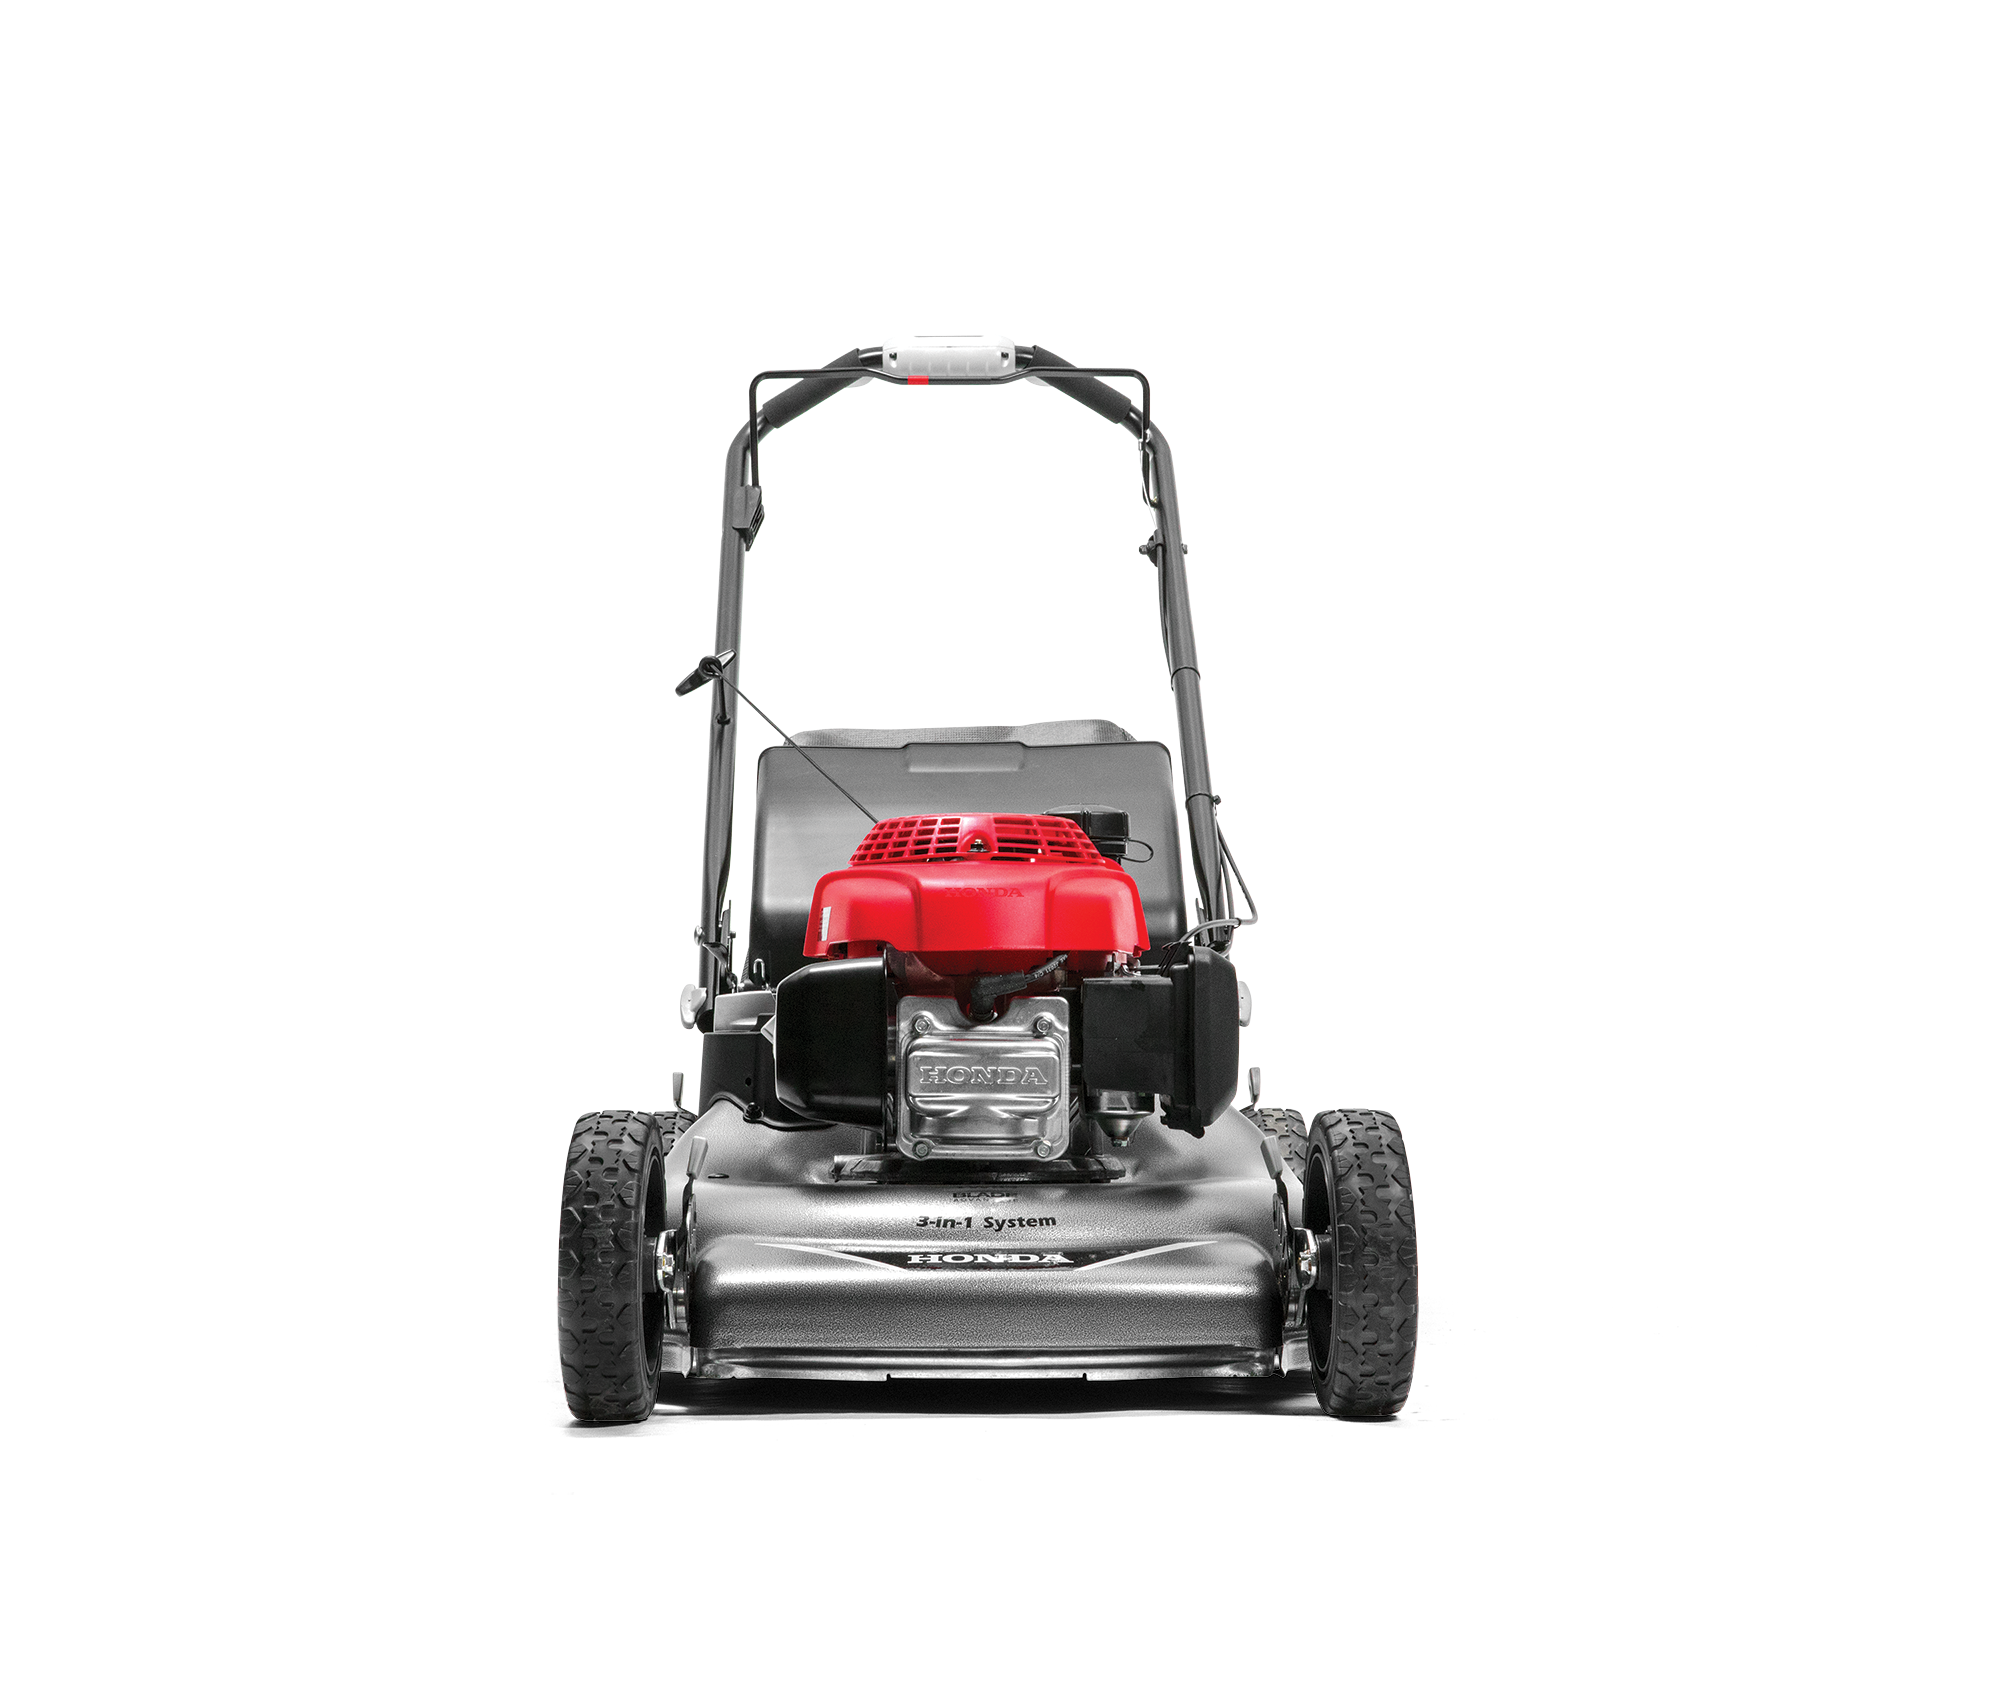 Image of the HRR Smart-Drive<sup>TM</sup> Lawn Mower